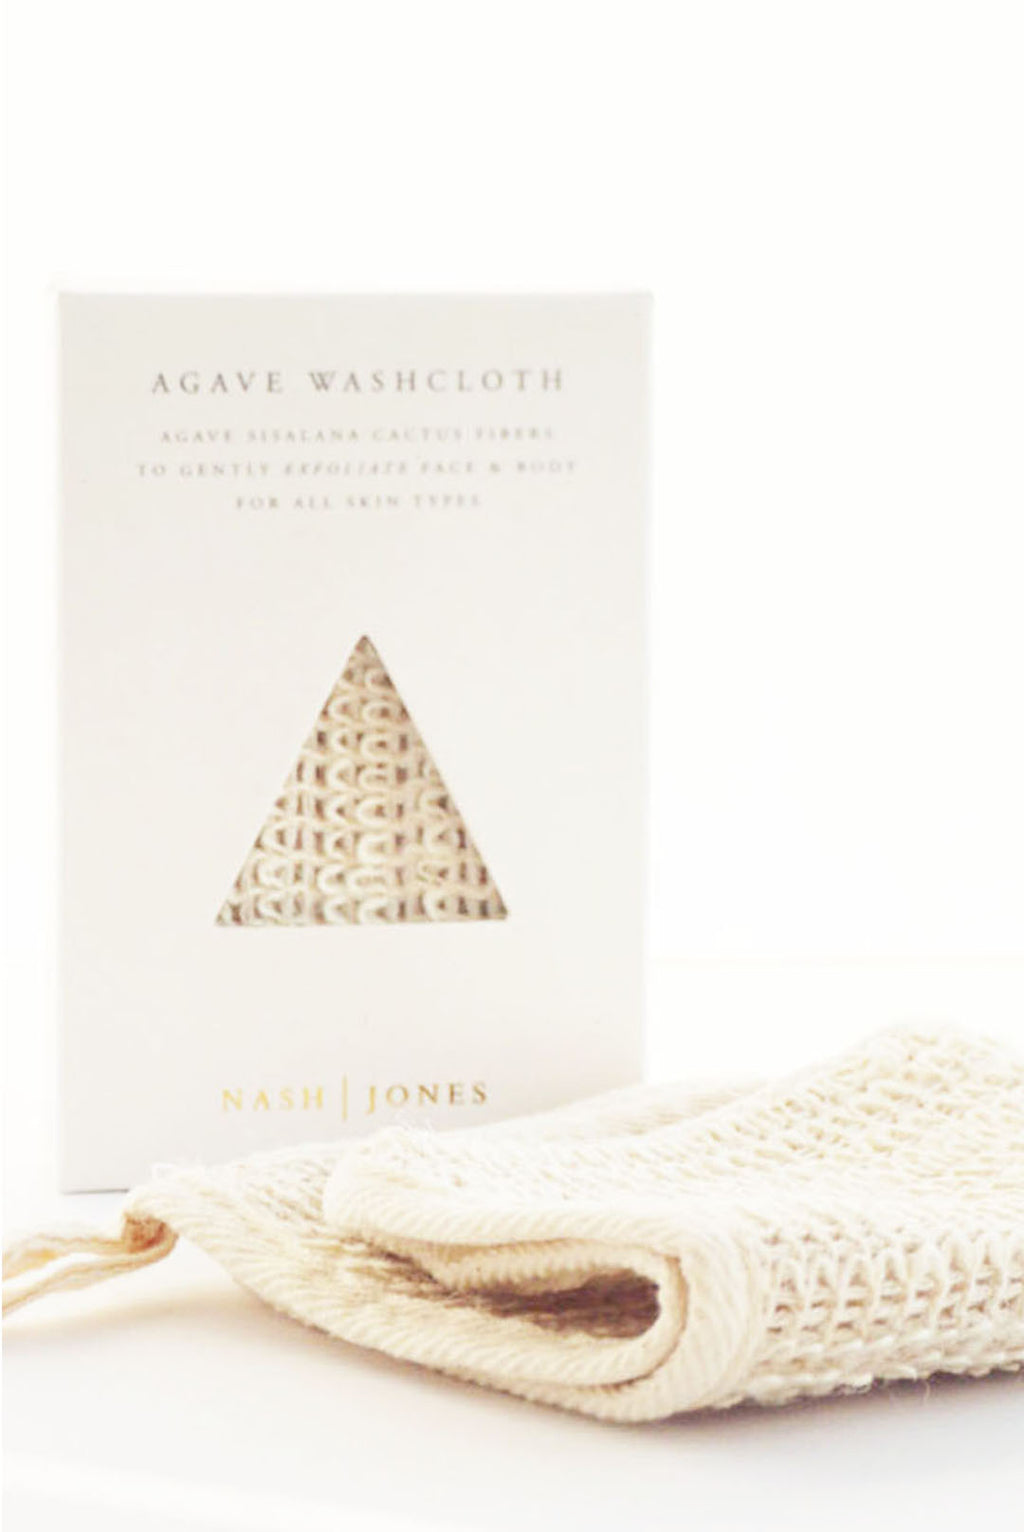 Natural Agave Washcloth